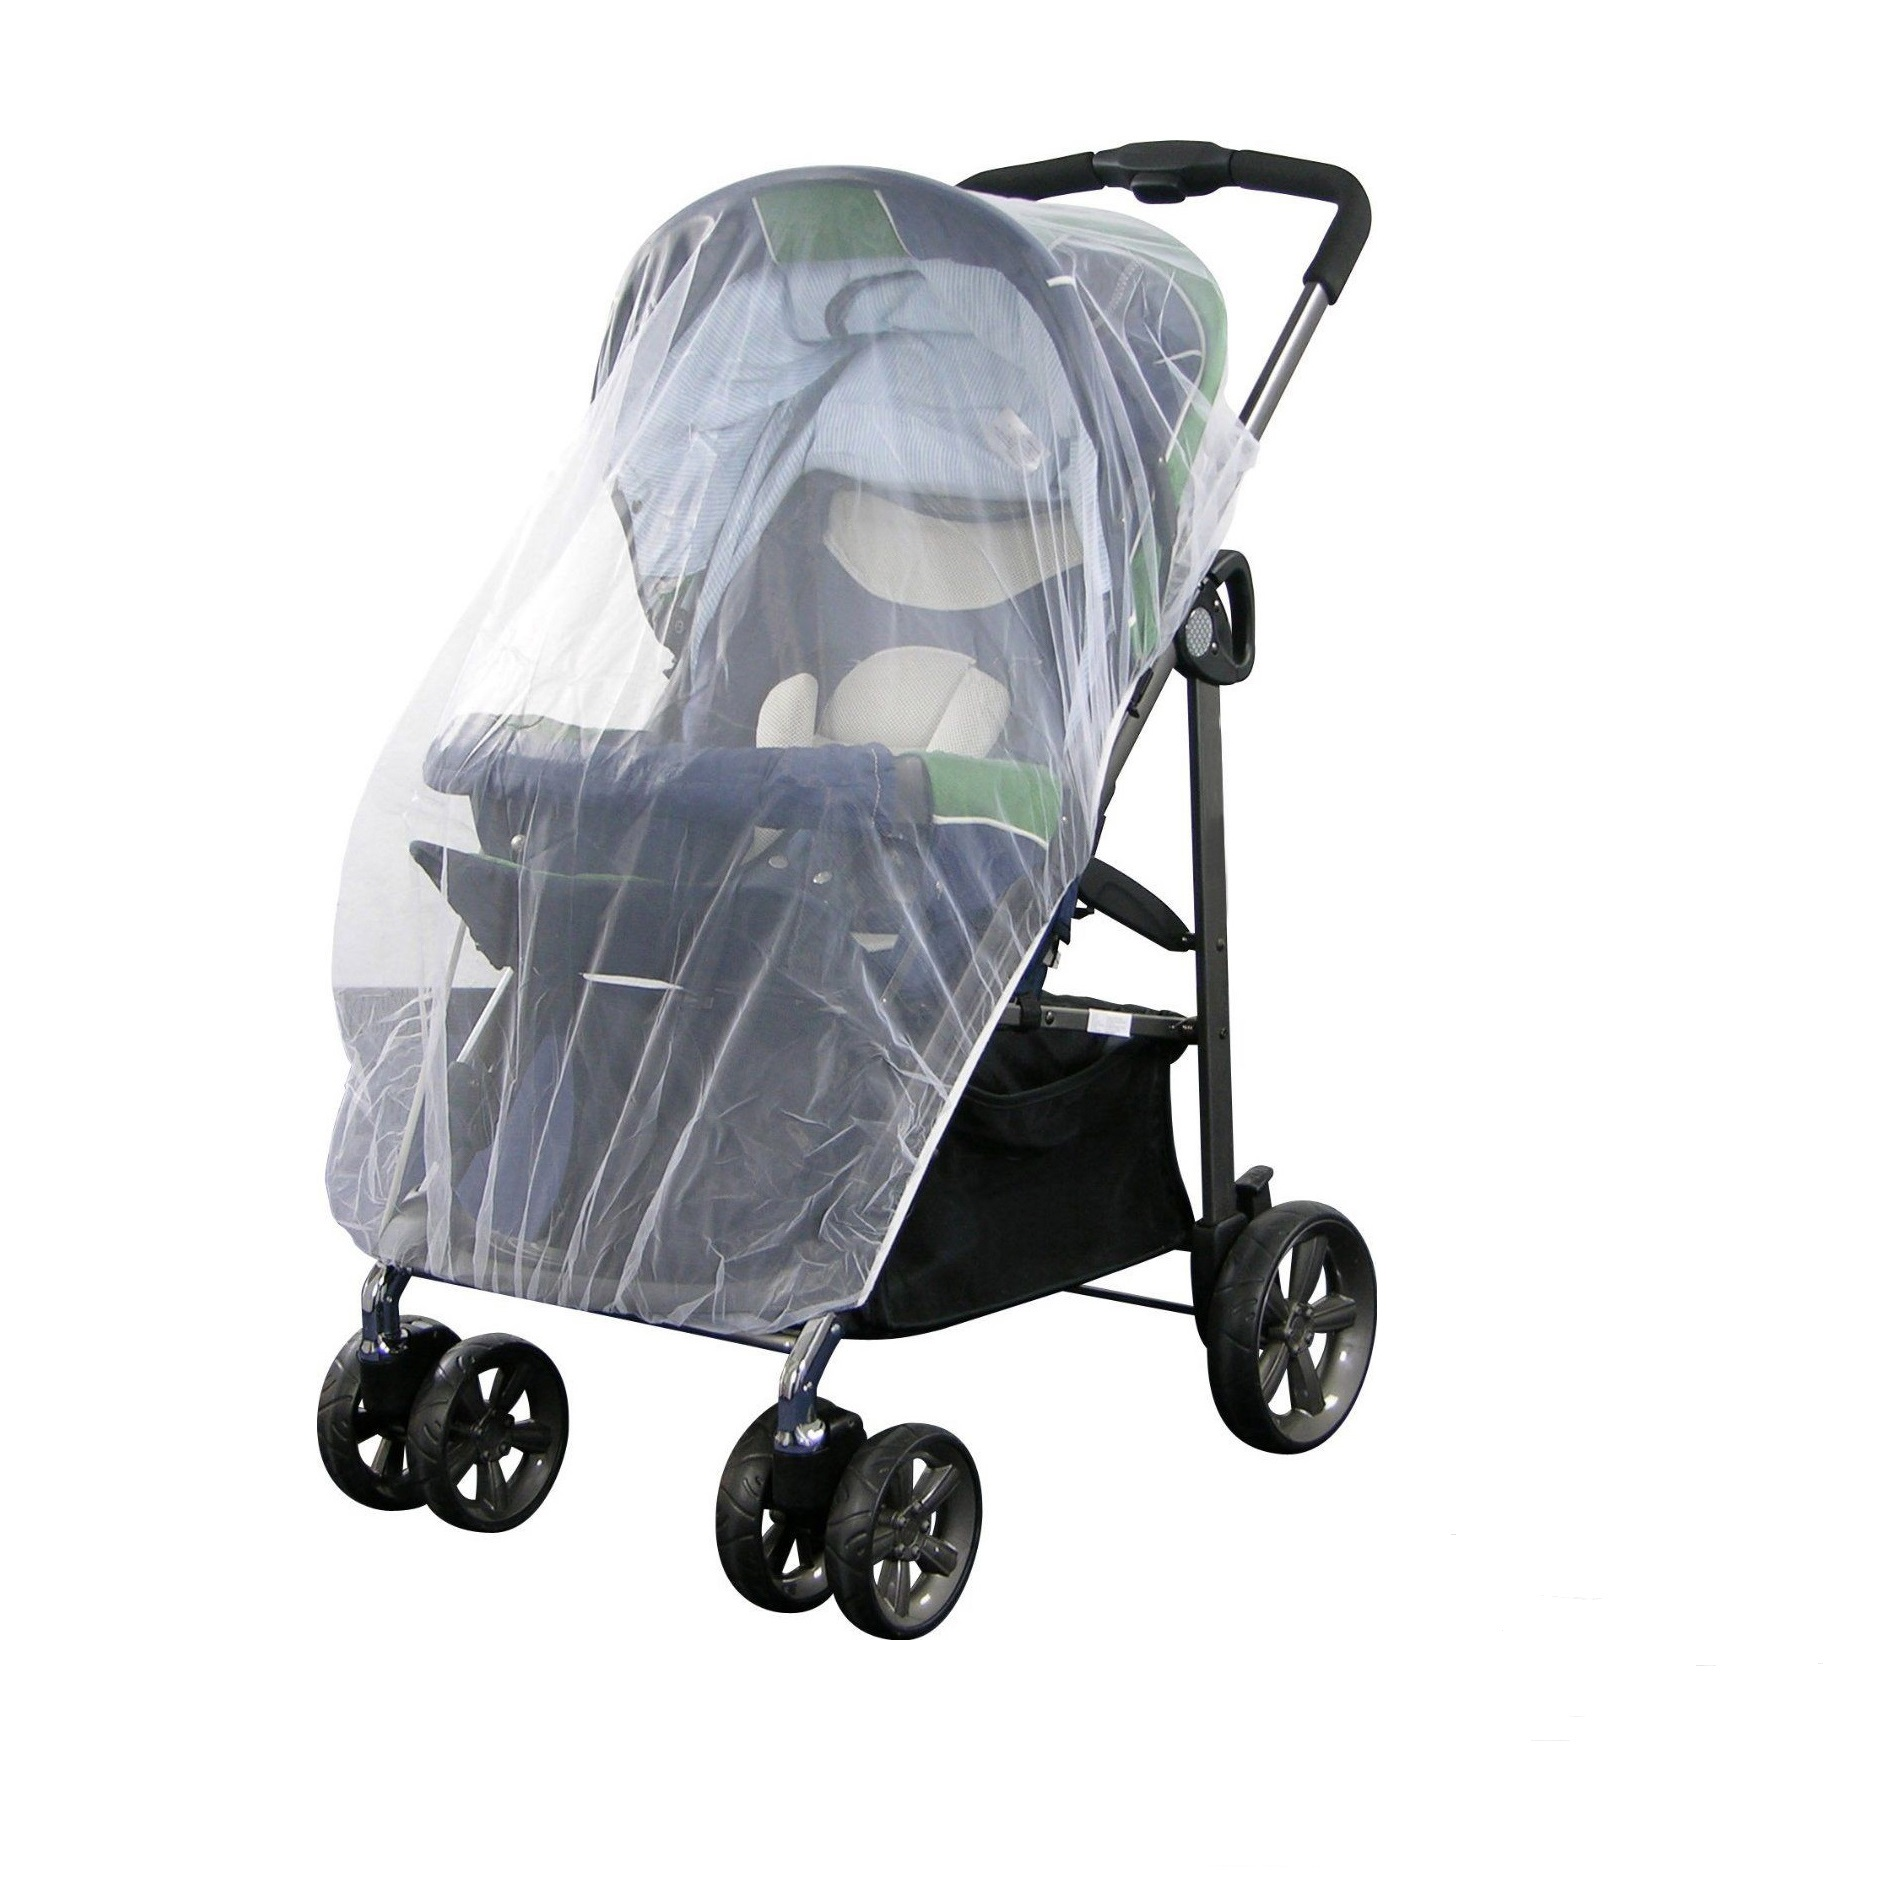 Stroller Mesh Cover Details About Mosquito Net Stroller Infants Baby Safe Mesh White Bee Insect Bug Cover